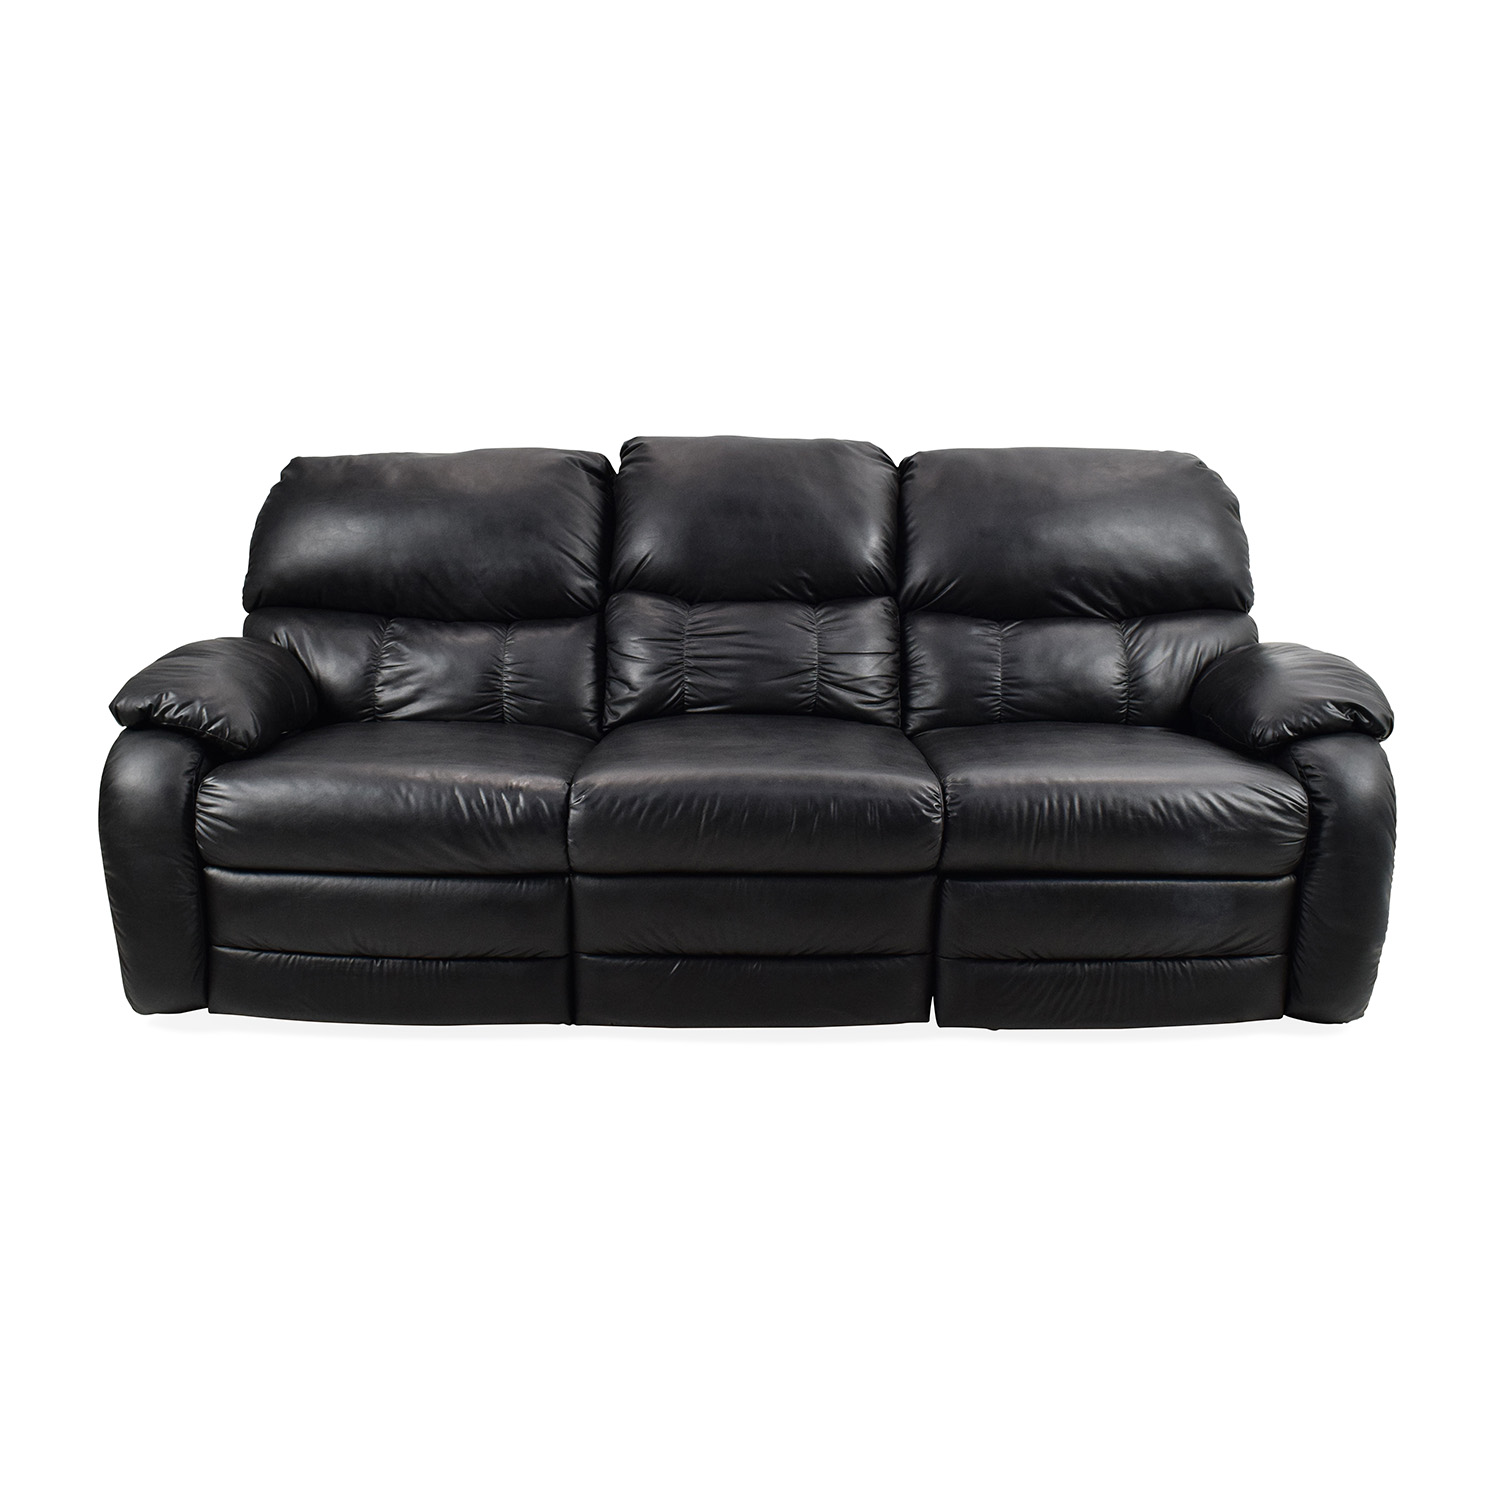 Black Leather Reclining Couch used